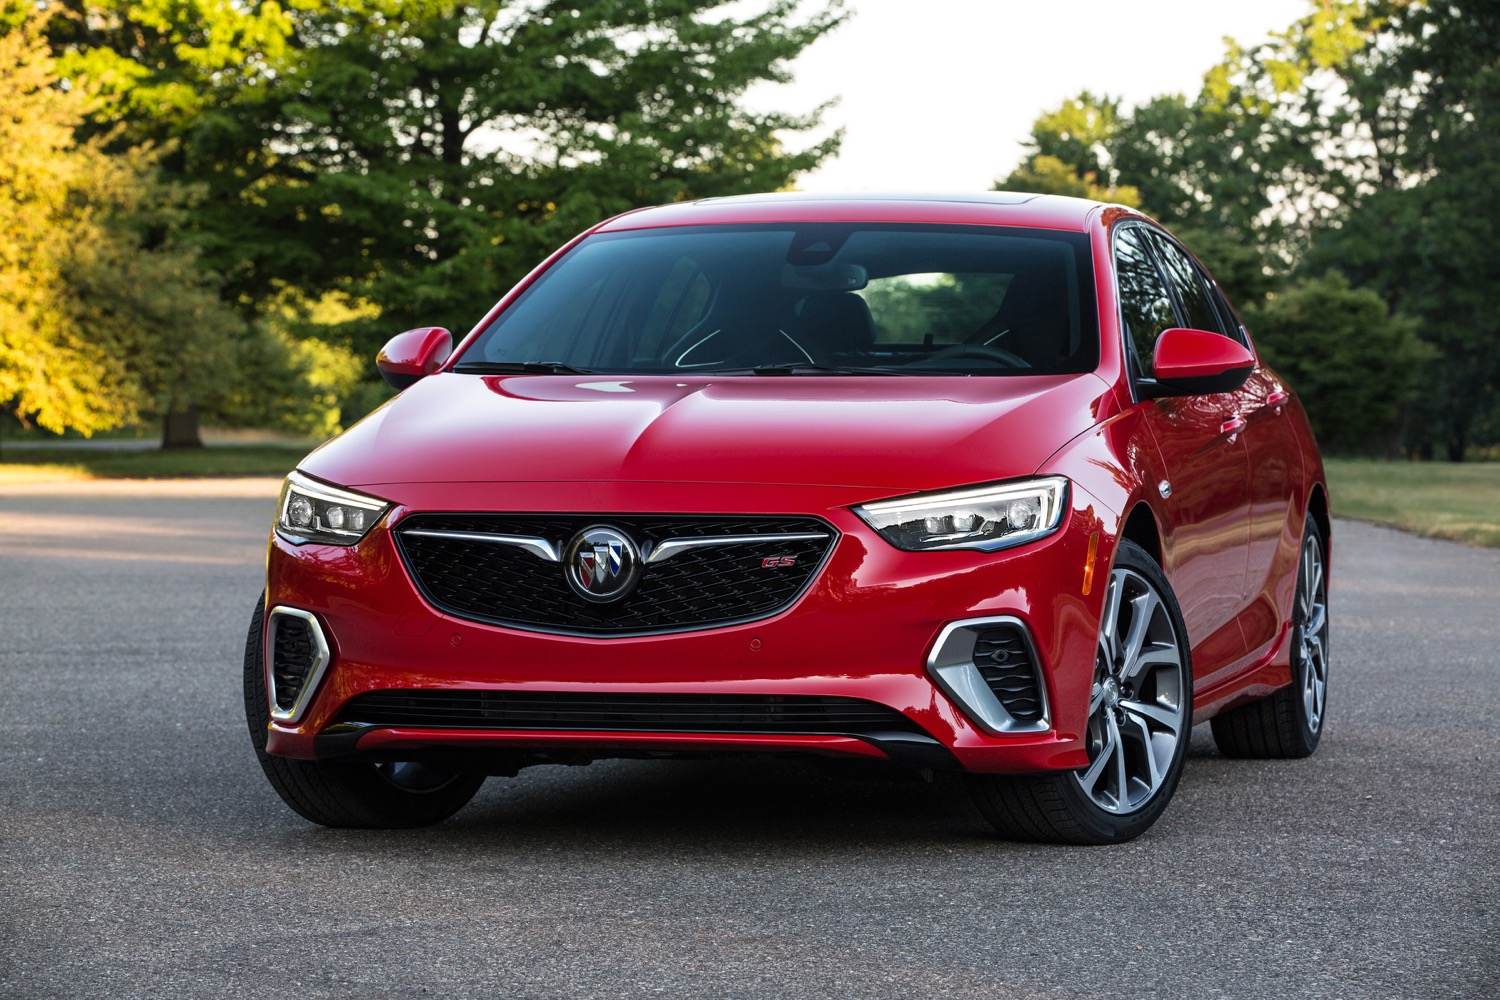 We Have Some Beef With This 2018 Buick Regal Gs Review | Gm New 2022 Buick Regal Gs 0-60, Interior, Engine